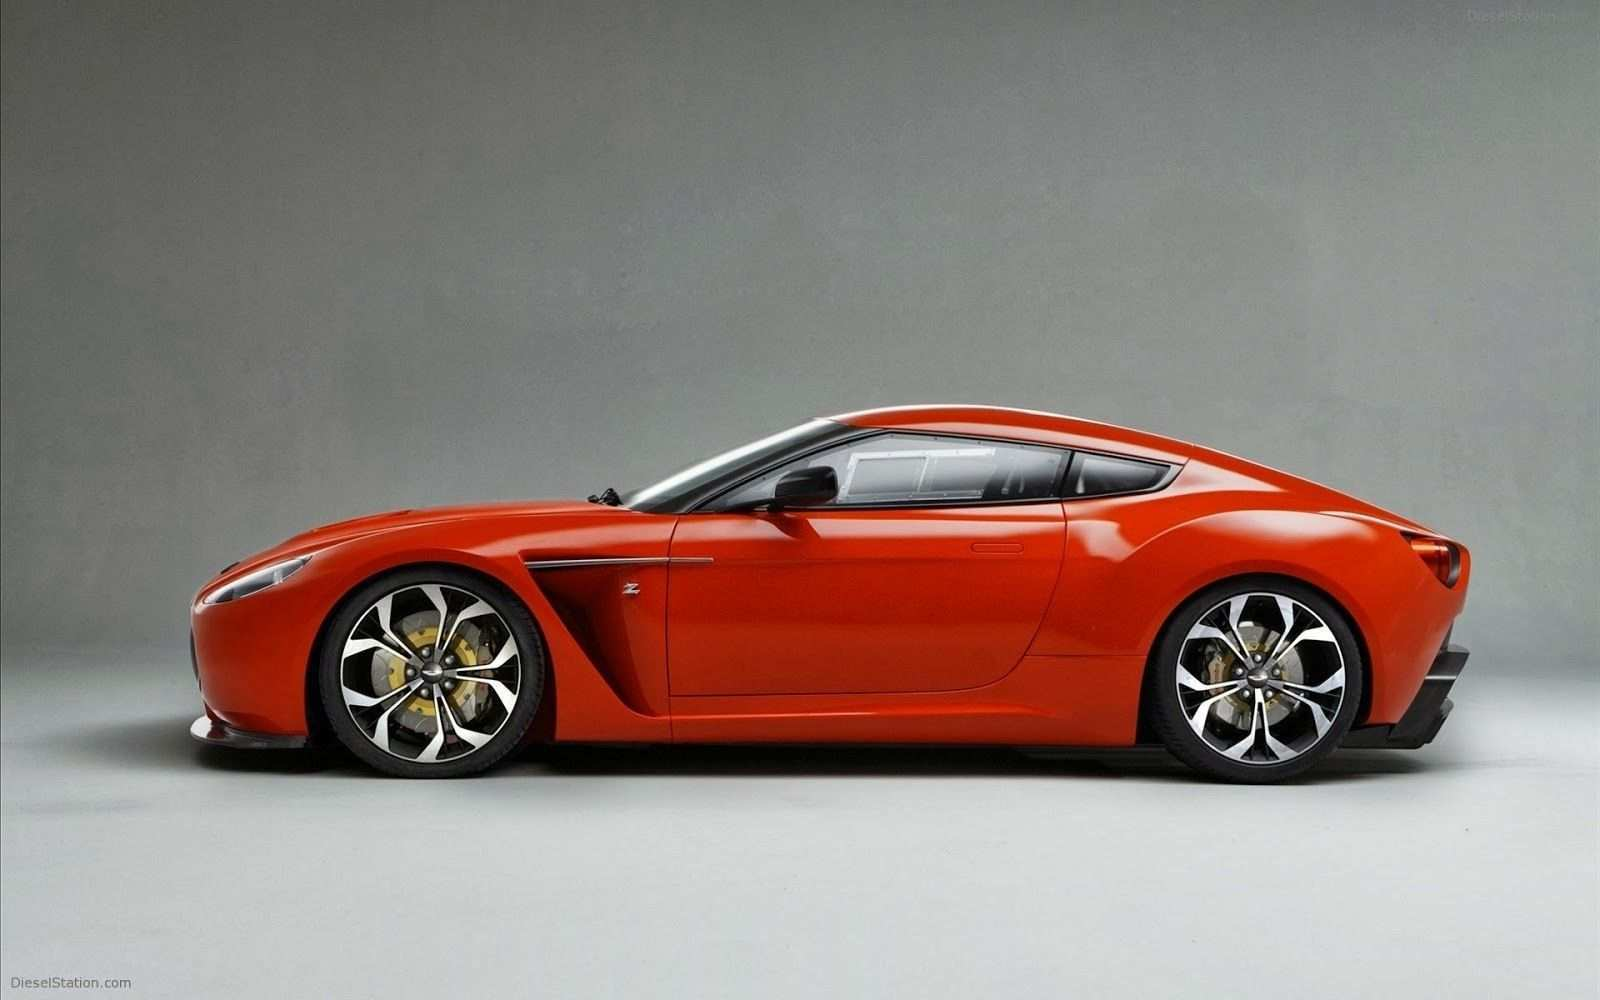 52 Concept of 2020 Aston Martin DB9 Exterior and Interior with 2020 Aston Martin DB9